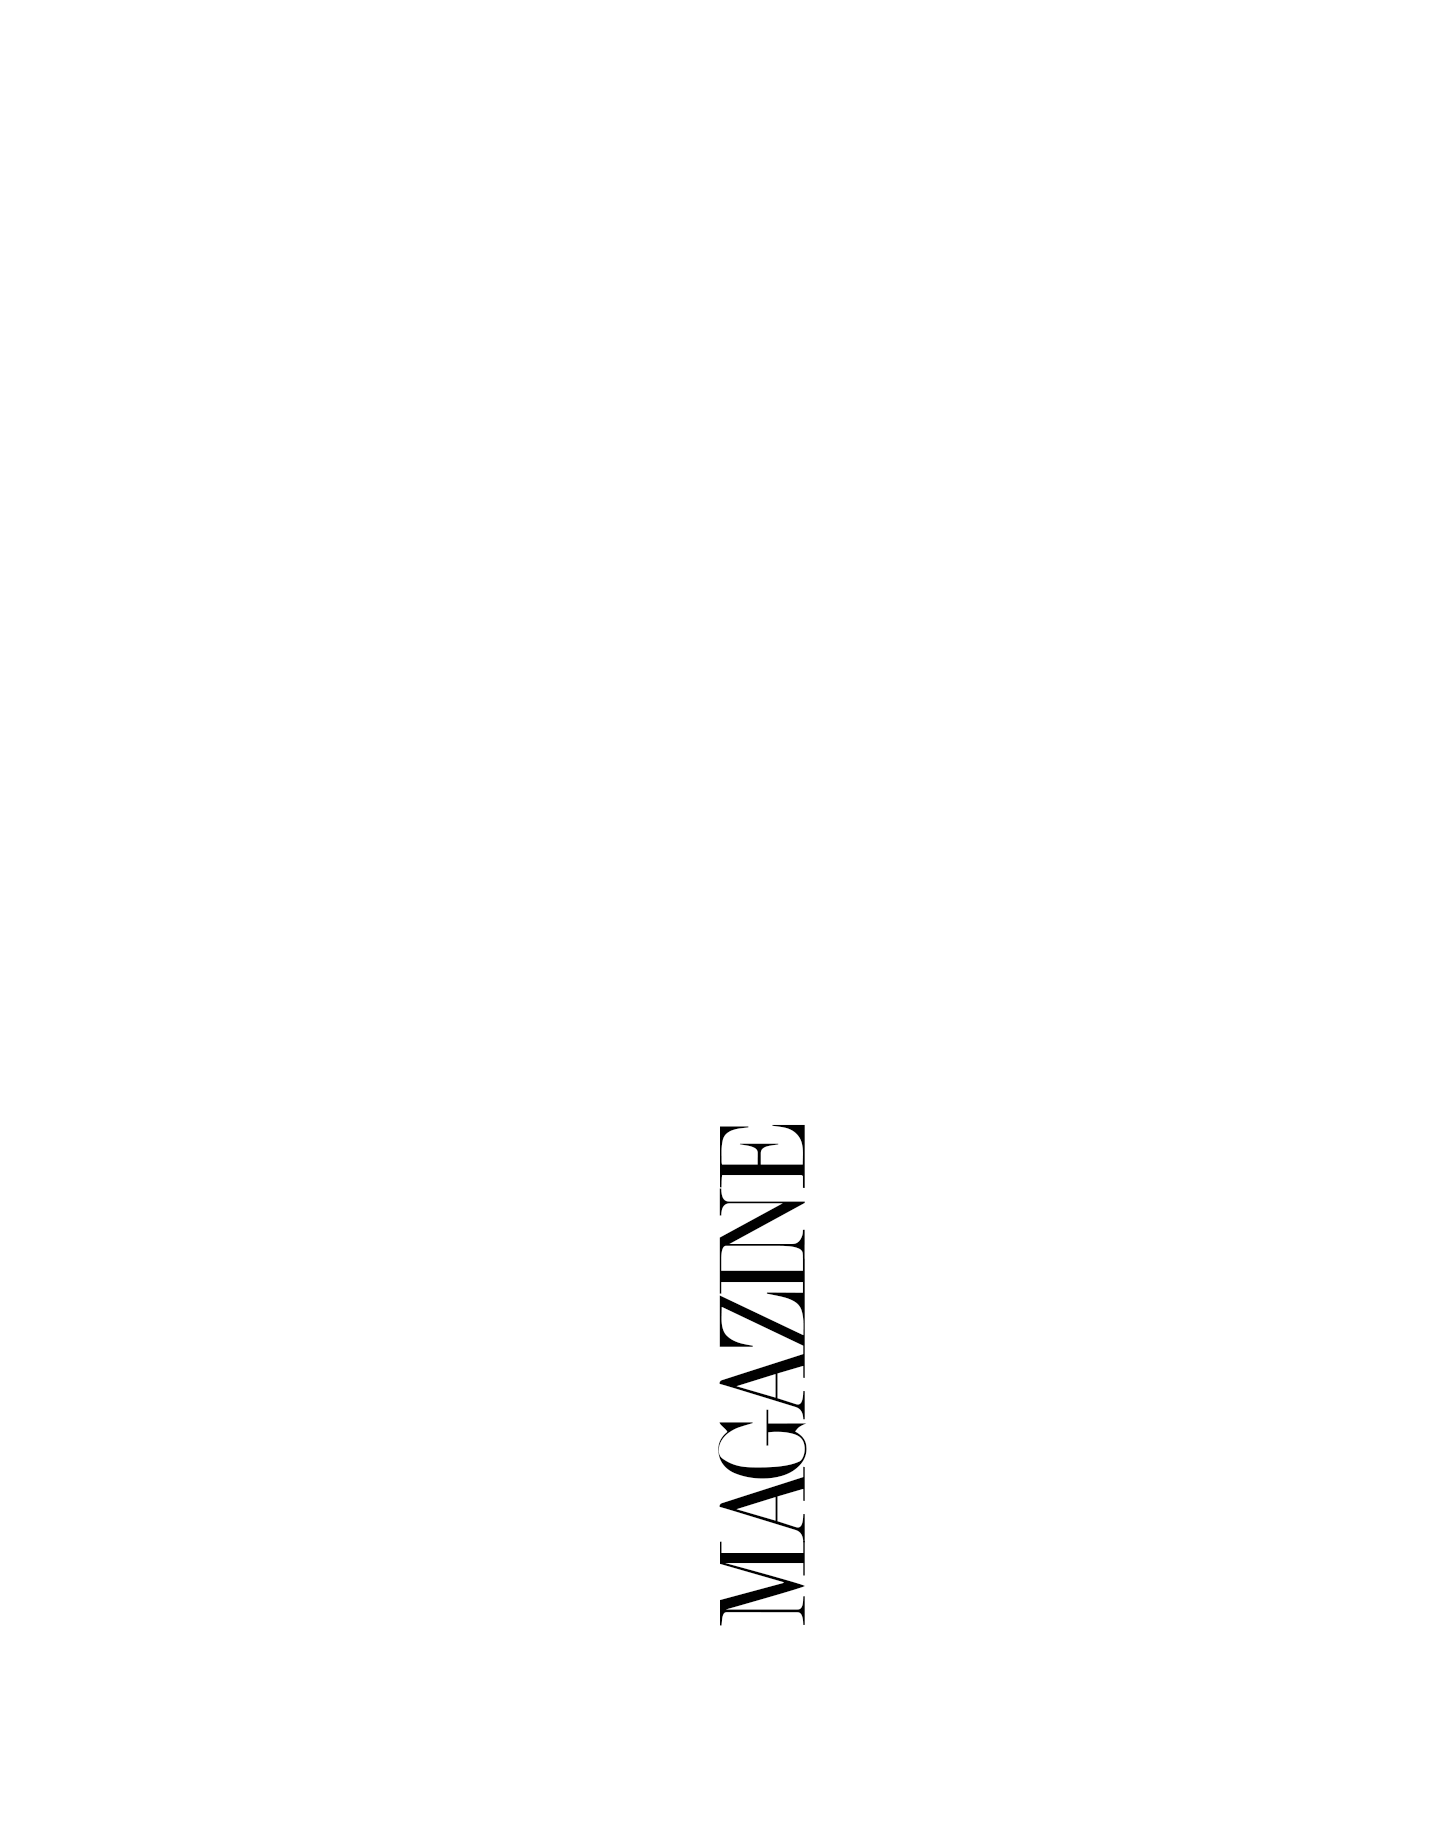 EMAIL: SOLISMAGAZIN@GMAIL.COM #1.646.222.2222